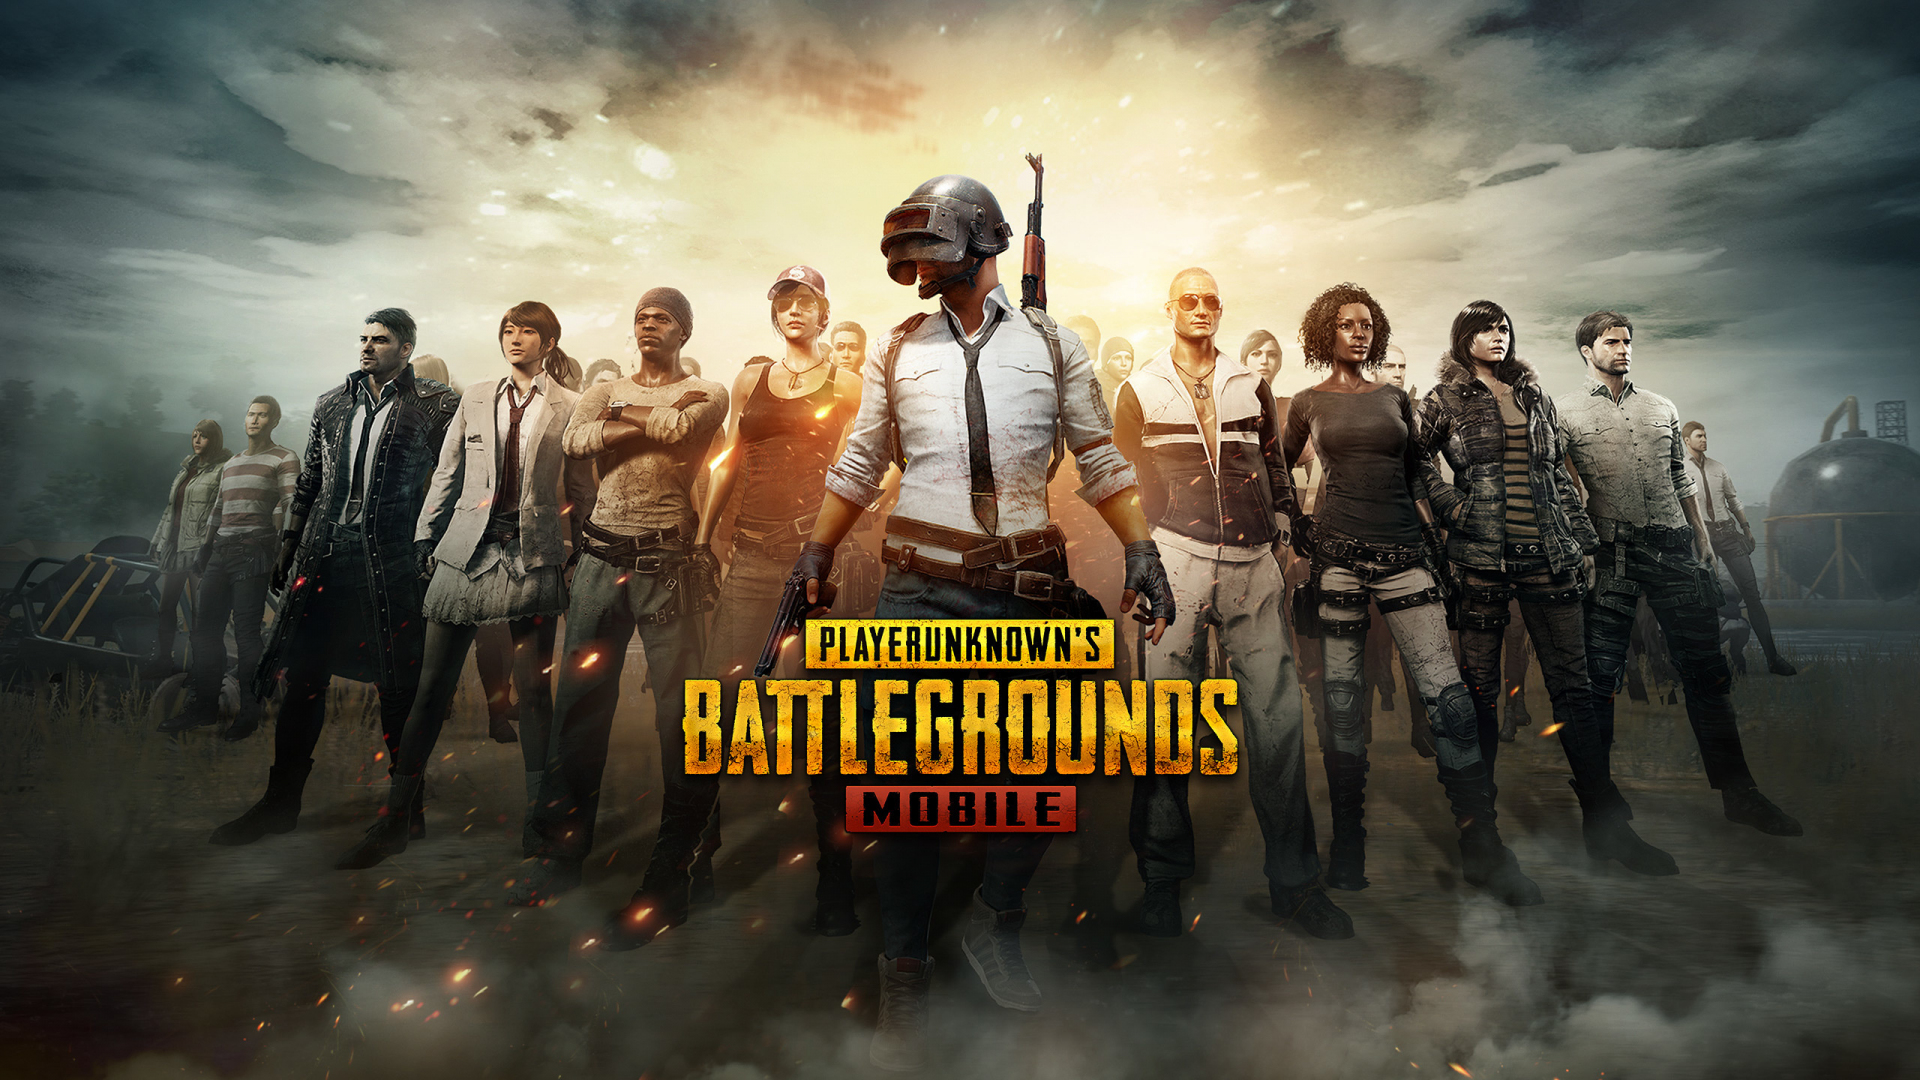 PUBG Mobile, Android Game, Characters, 1920x1080 Wallpaper